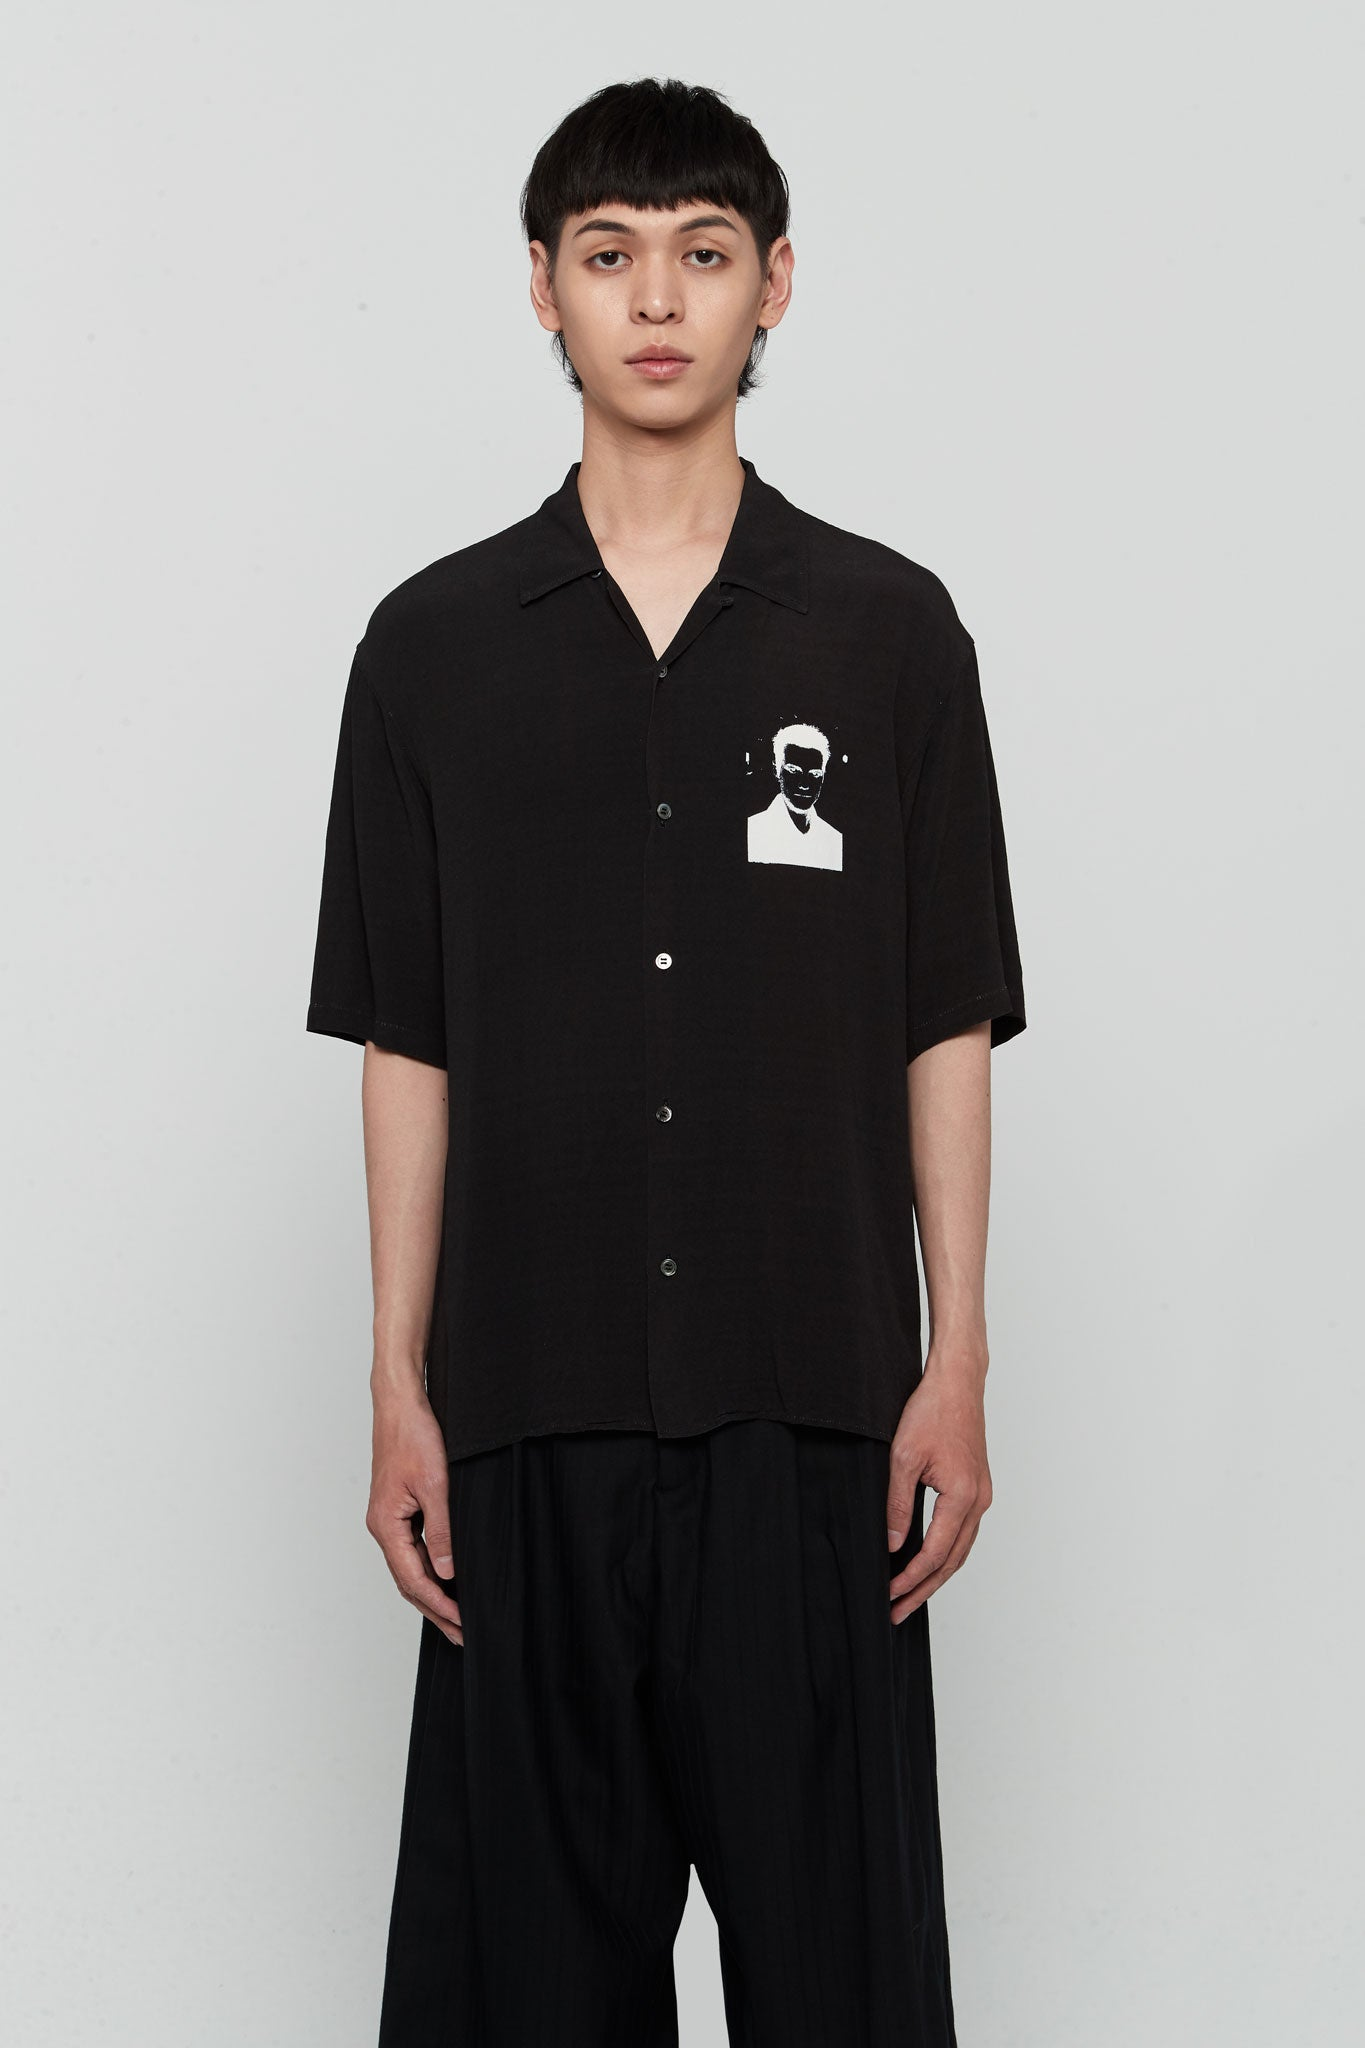 S/S Printed Shirt Black